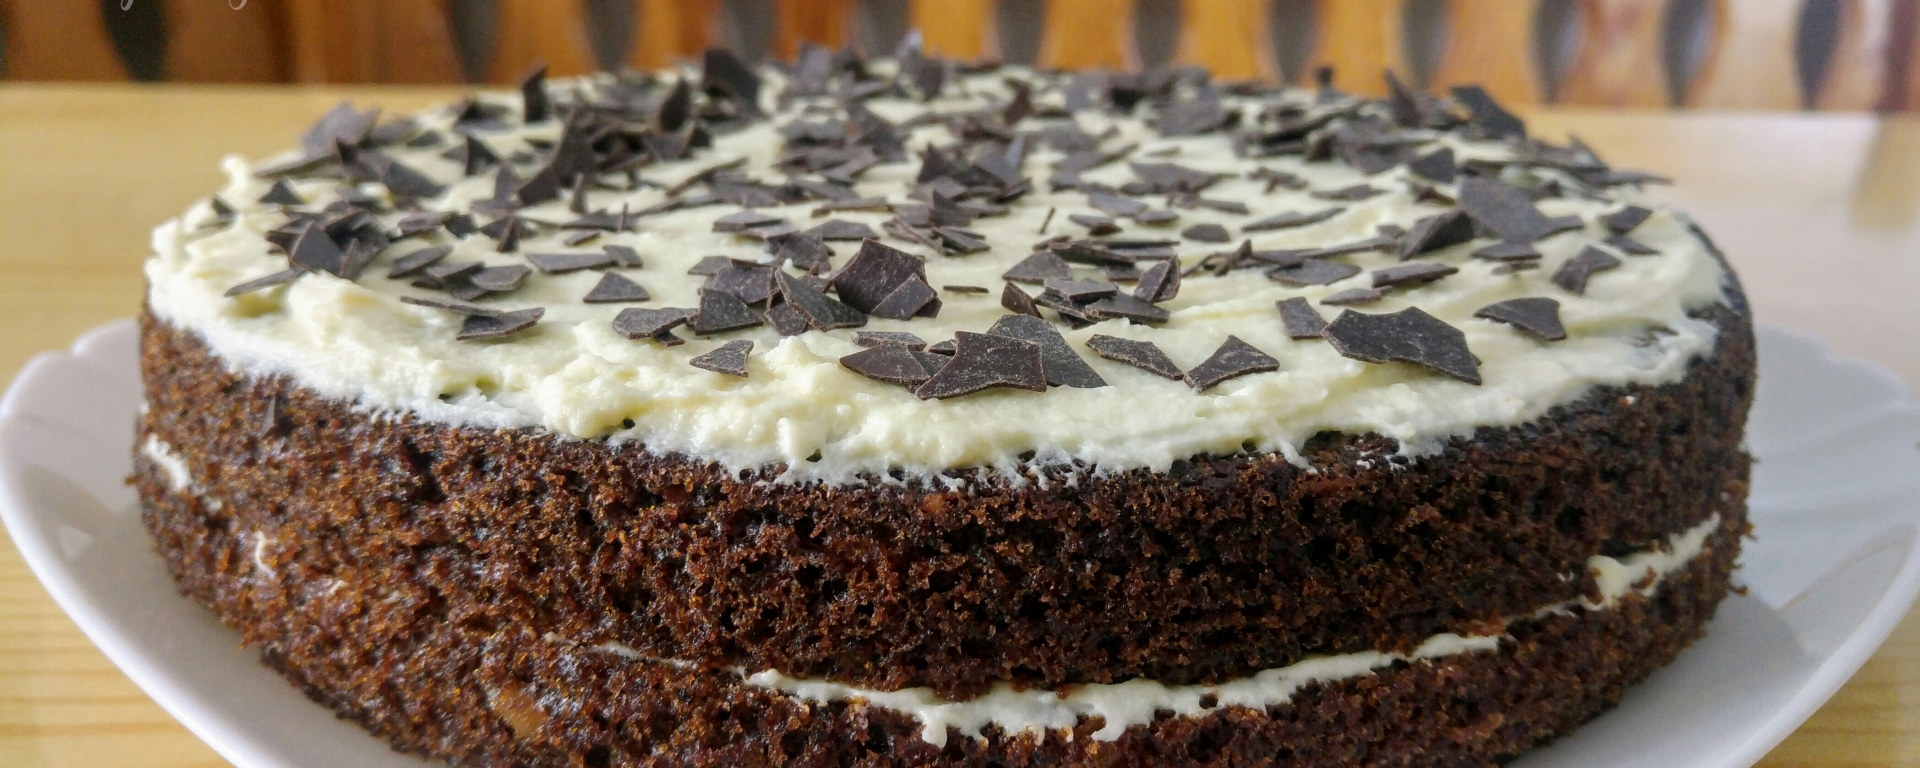 Finished white chocolate carrot cake, view from the side